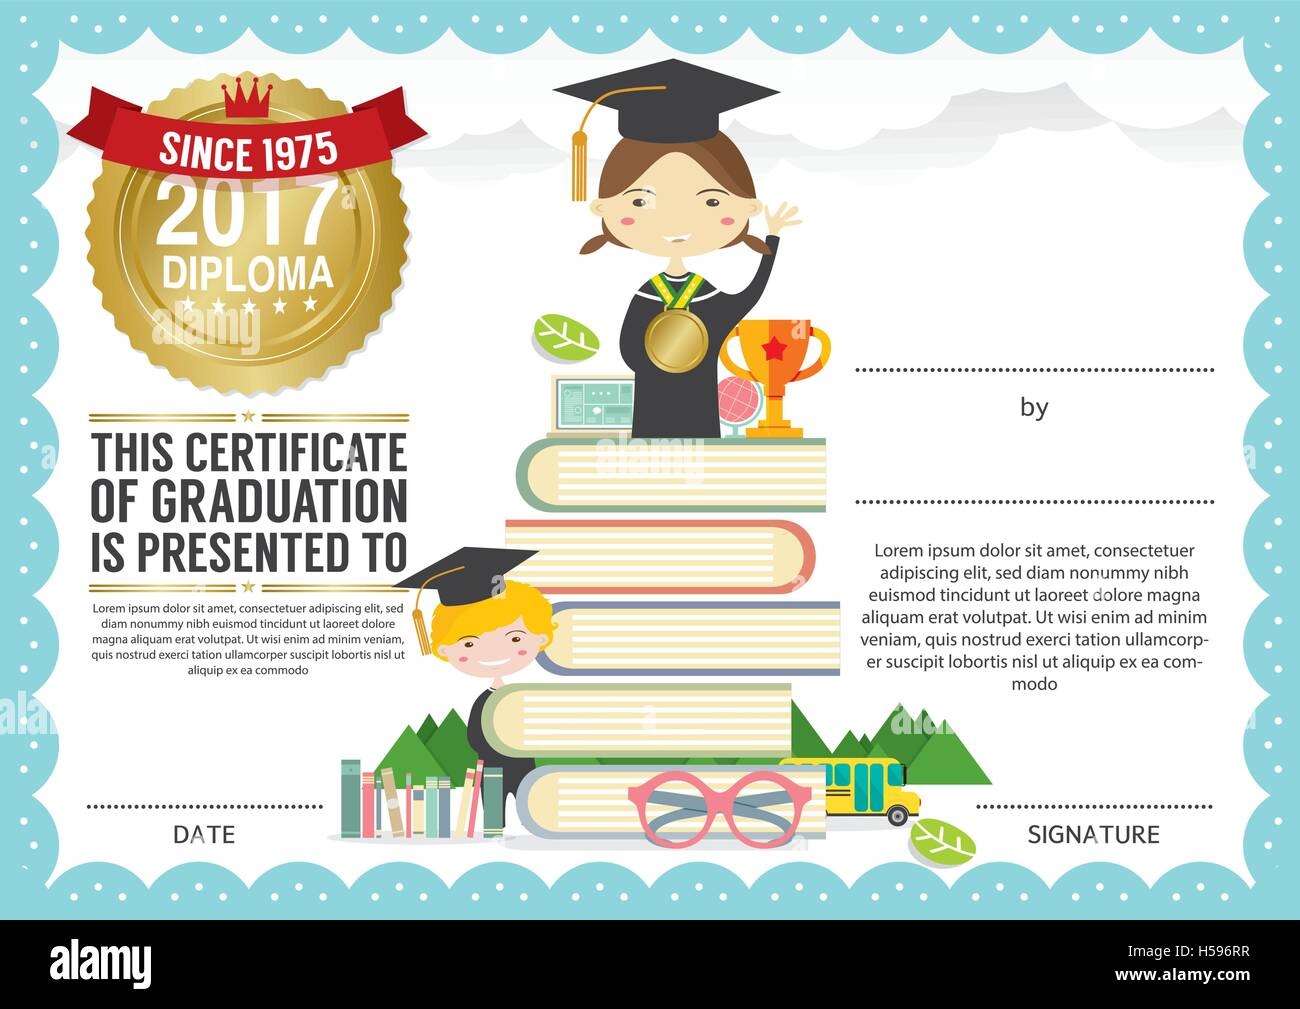 Preschool elementary school kids diploma certificate background preschool elementary school kids diploma certificate background design template xflitez Images